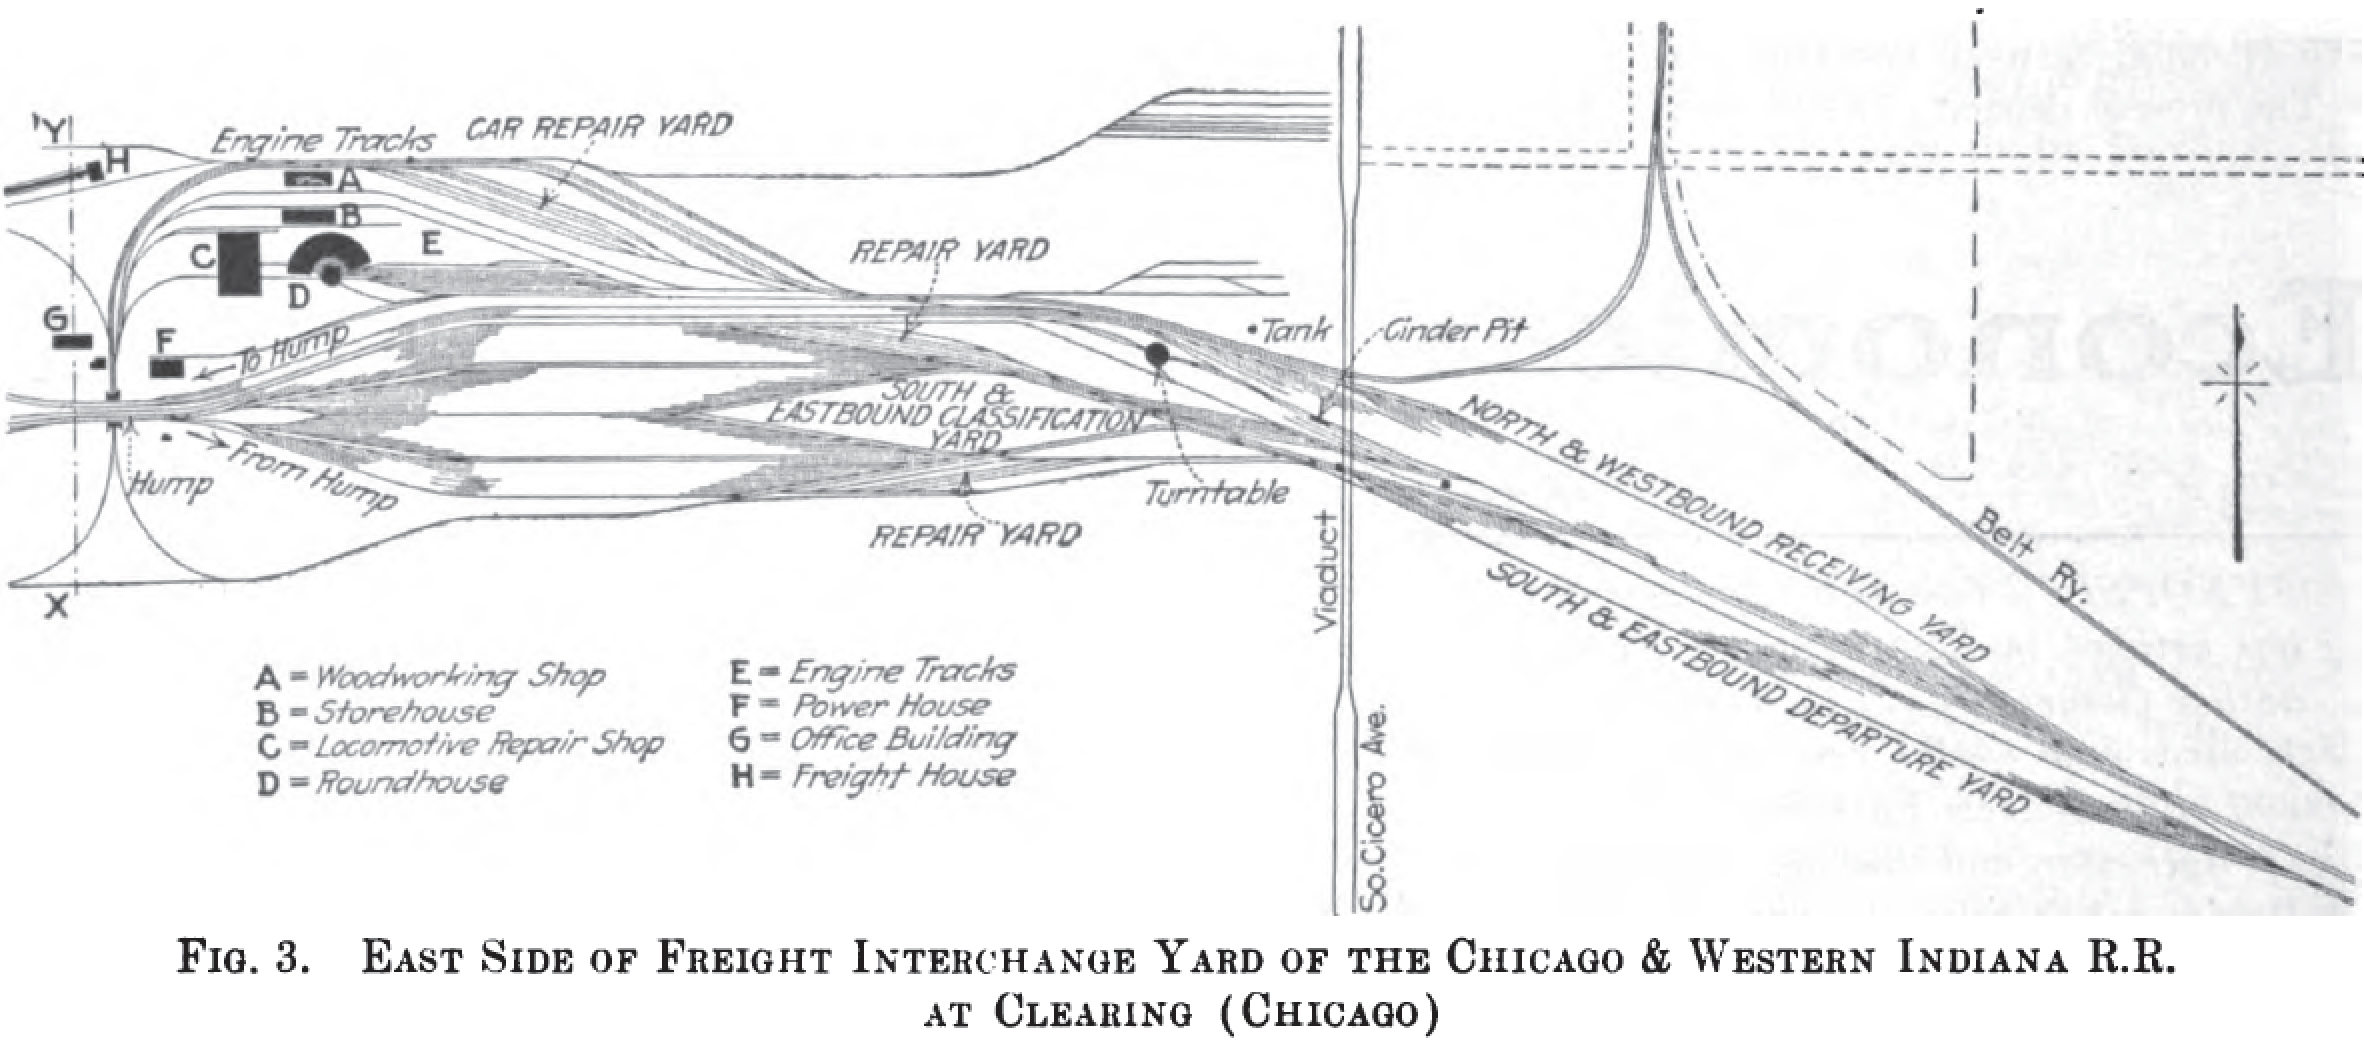 Belt Railways and Clearing Yards in Chicago on indiana harbor belt timetable, indiana & ohio railroad map, port harbor railroad map, indiana harbor railroad system map, norfolk southern railway map, csx transportation map, indiana southern railroad route map, indianapolis belt railroad map, belt railway of chicago map, canadian pacific railway map, indiana interurban railroad map, bnsf railway map,